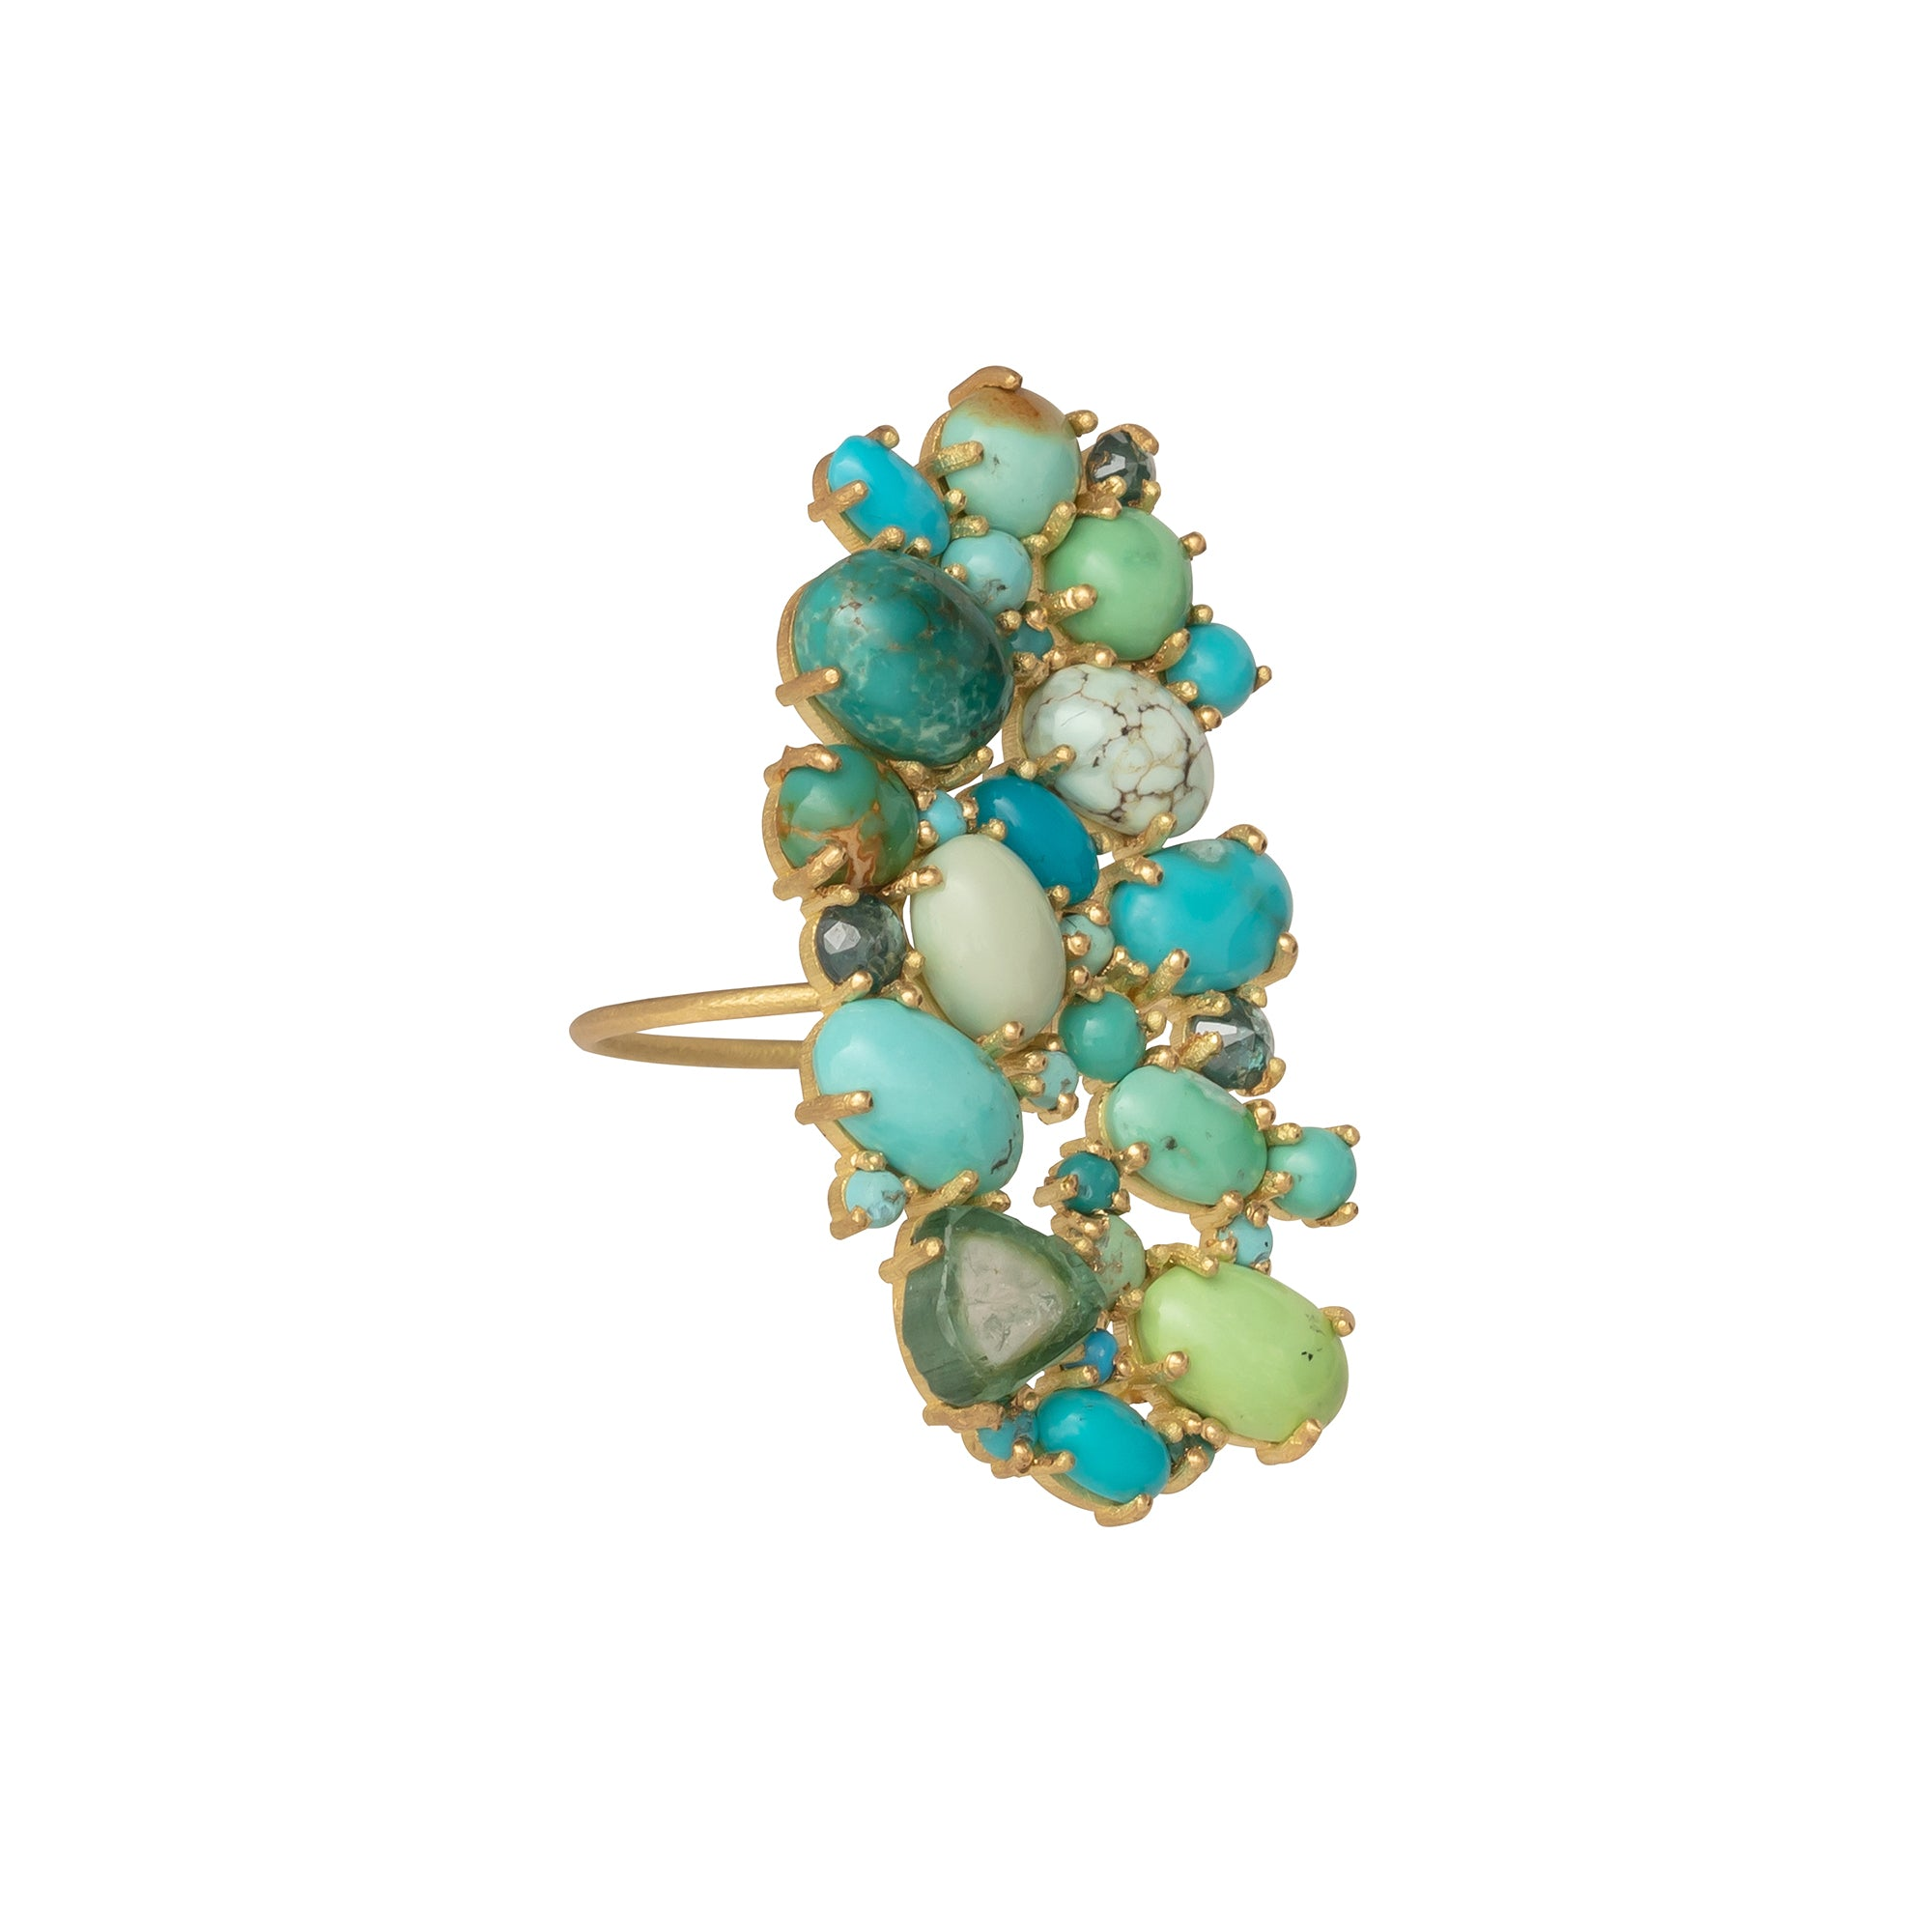 Turquoise Blue Diamond and Tourmaline Ring - Marisa Klass - Rings | Broken English Jewelry